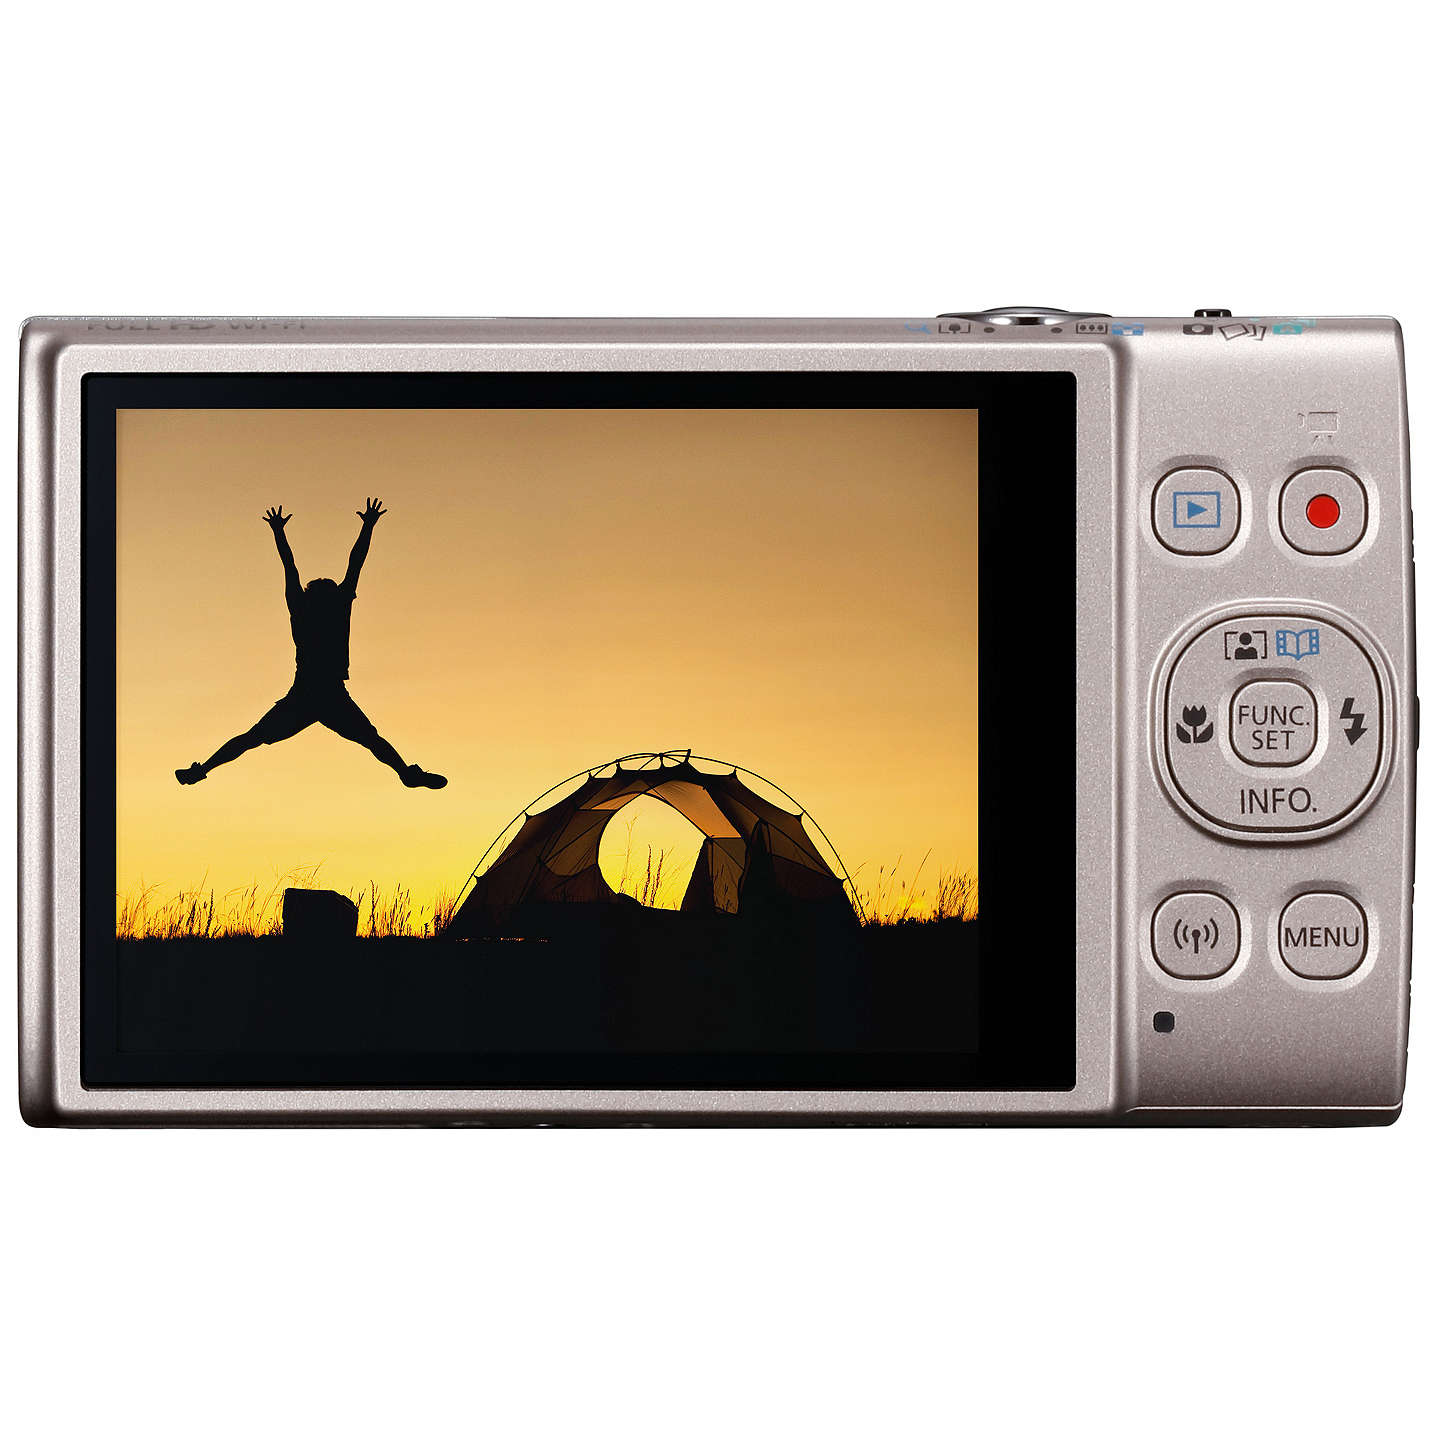 "BuyCanon IXUS 285 HS Digital Camera Kit, Full HD 1080p, 20.2MP, 12x Optical Zoom, 24x Zoom Plus, Wi-Fi, NFC, 3"" LCD Screen With Leather Case & 16GB SD Card, Silver Online at johnlewis.com"